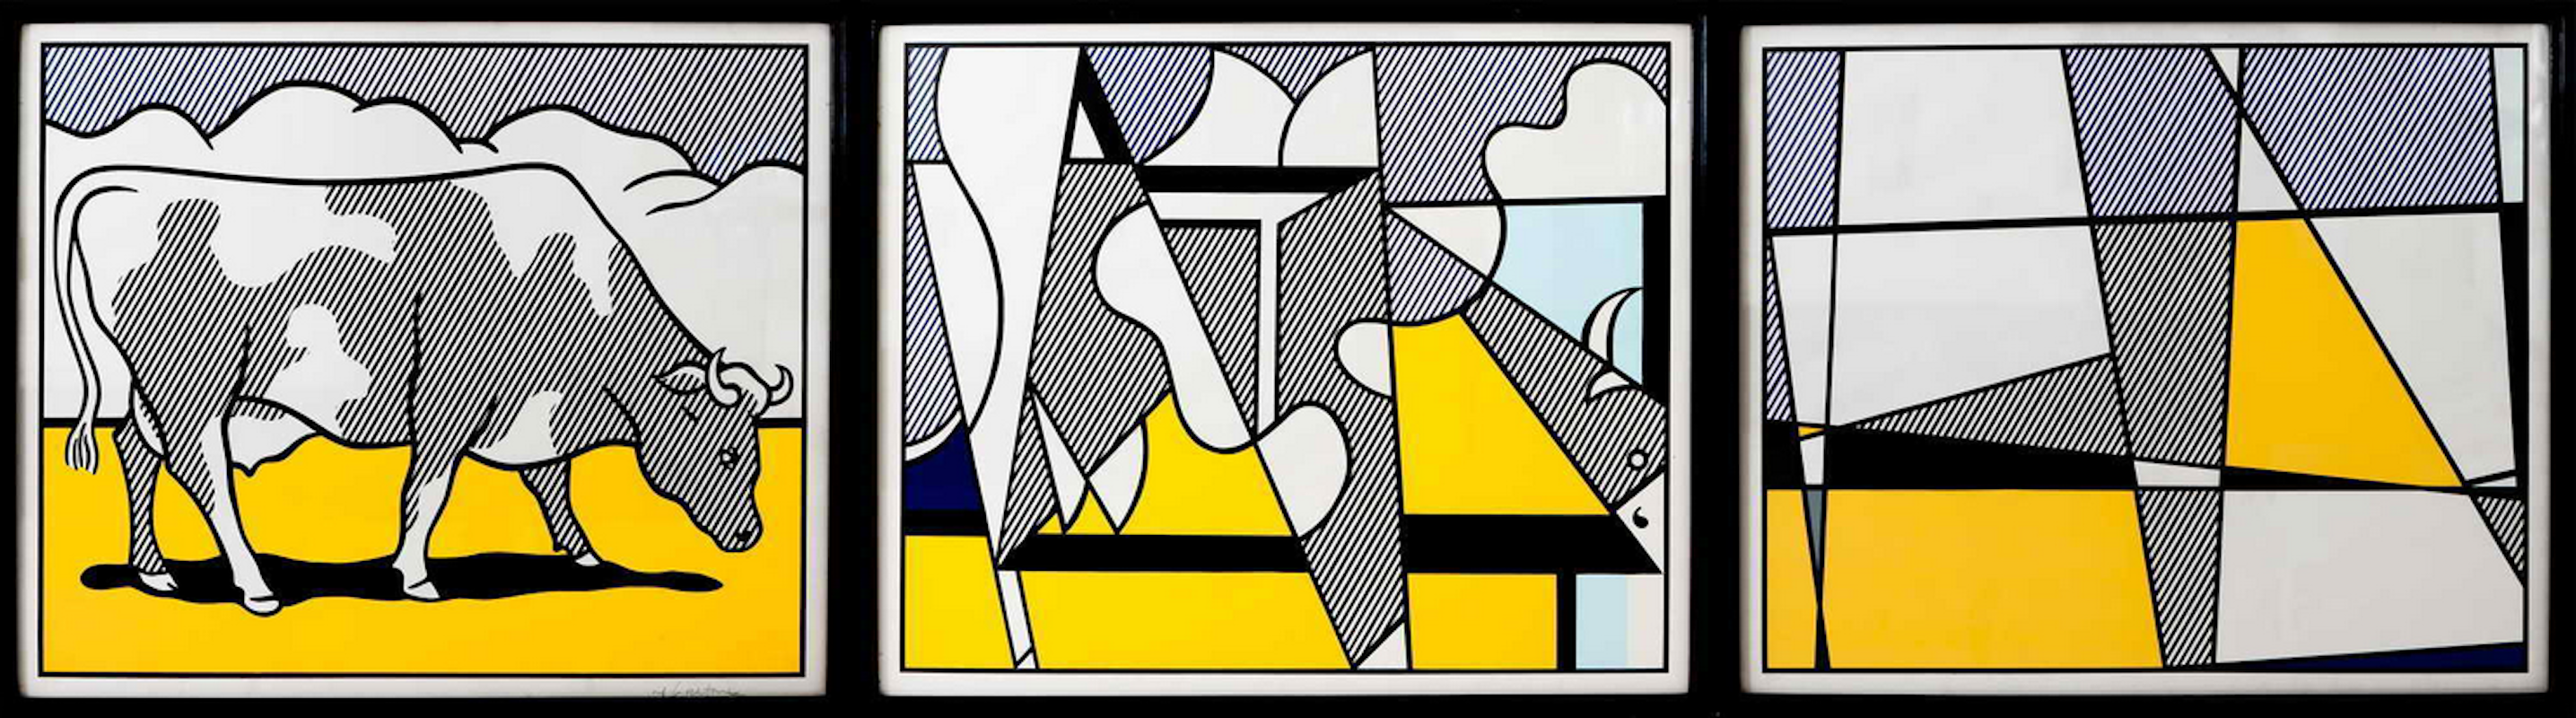 Cow Going Abstract by Roy Lichtenstein